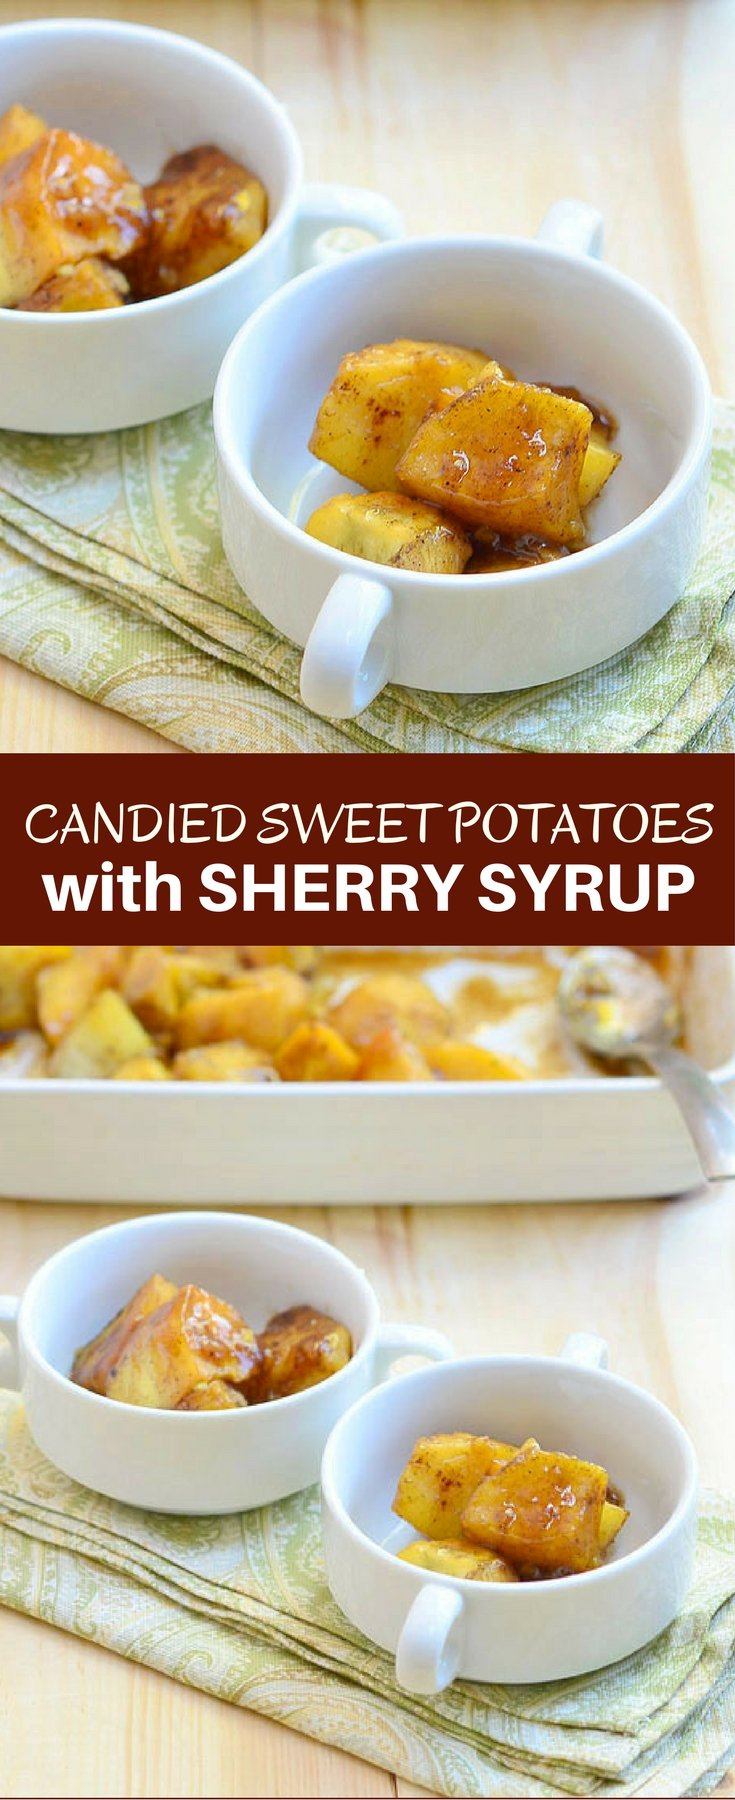 Candied Sweet Potatoes with Sherry Syrup baked in brown sugar, dry sherry, and pumpkin pie spice is a great addition to your Thanksgiving menu. With creamy potatoes and sweet syrup, it's delicious as dessert or side dish.